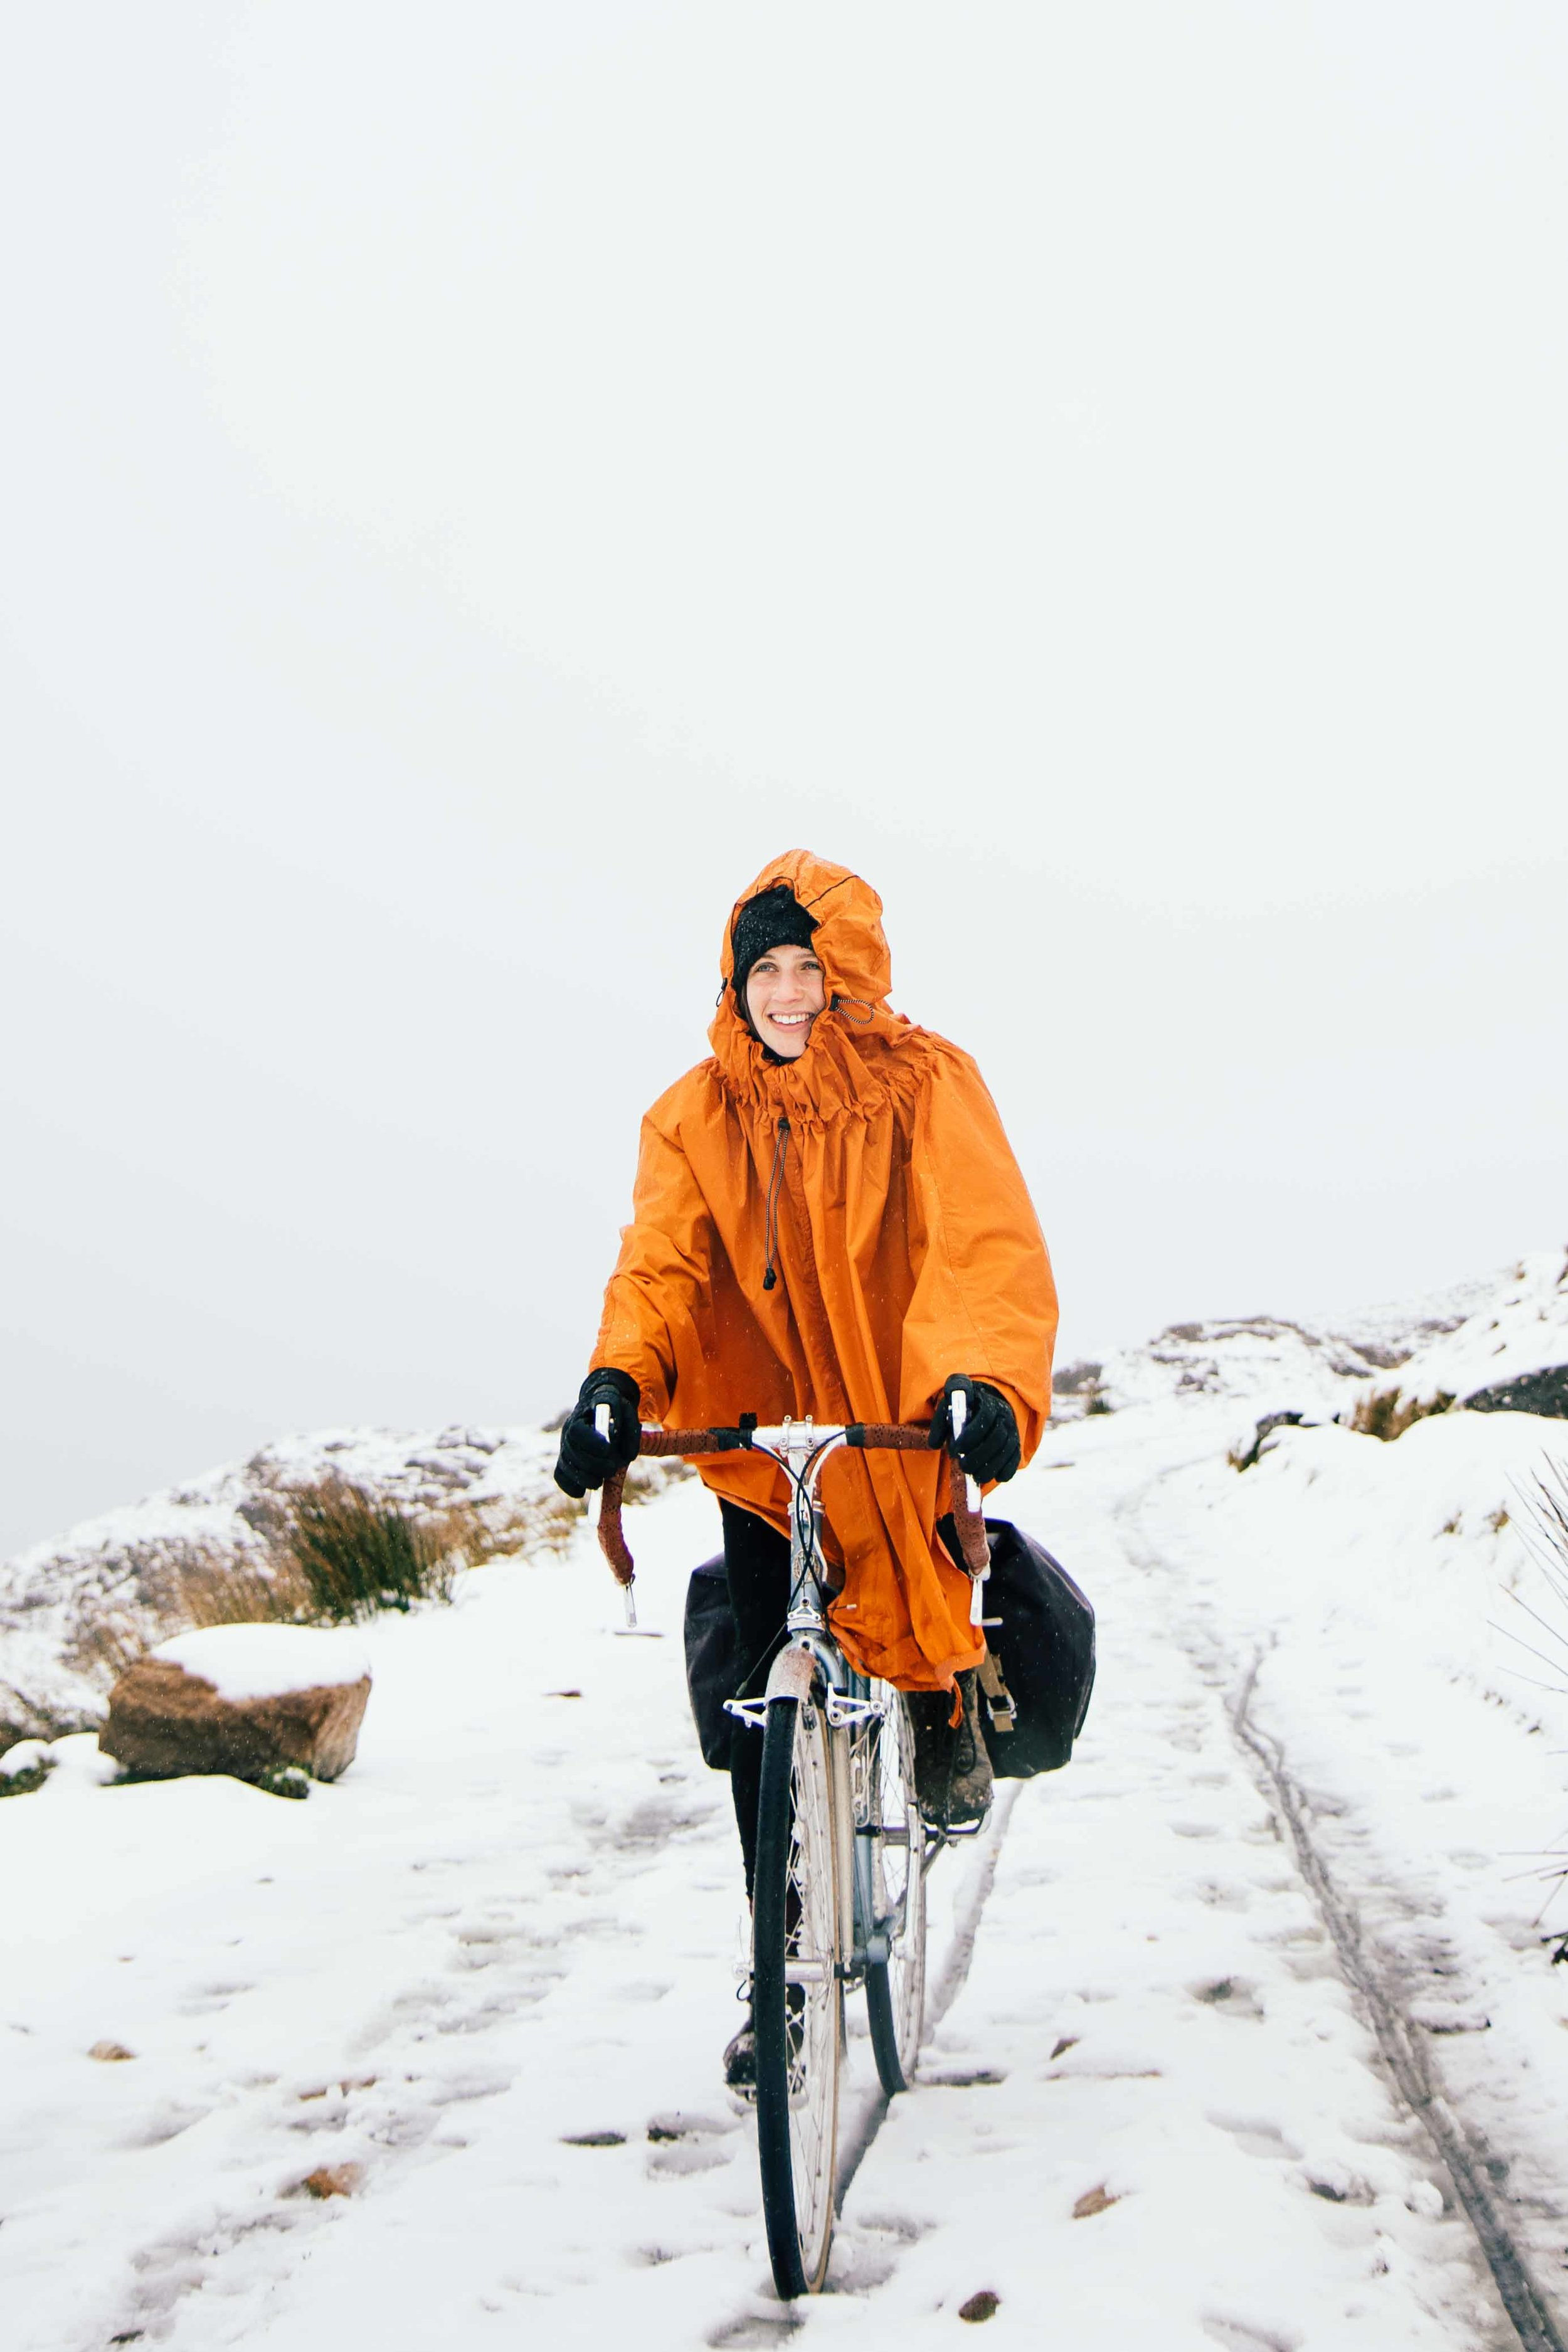 I am able to shoot and capture cycling in a wide variety of weather conditions.